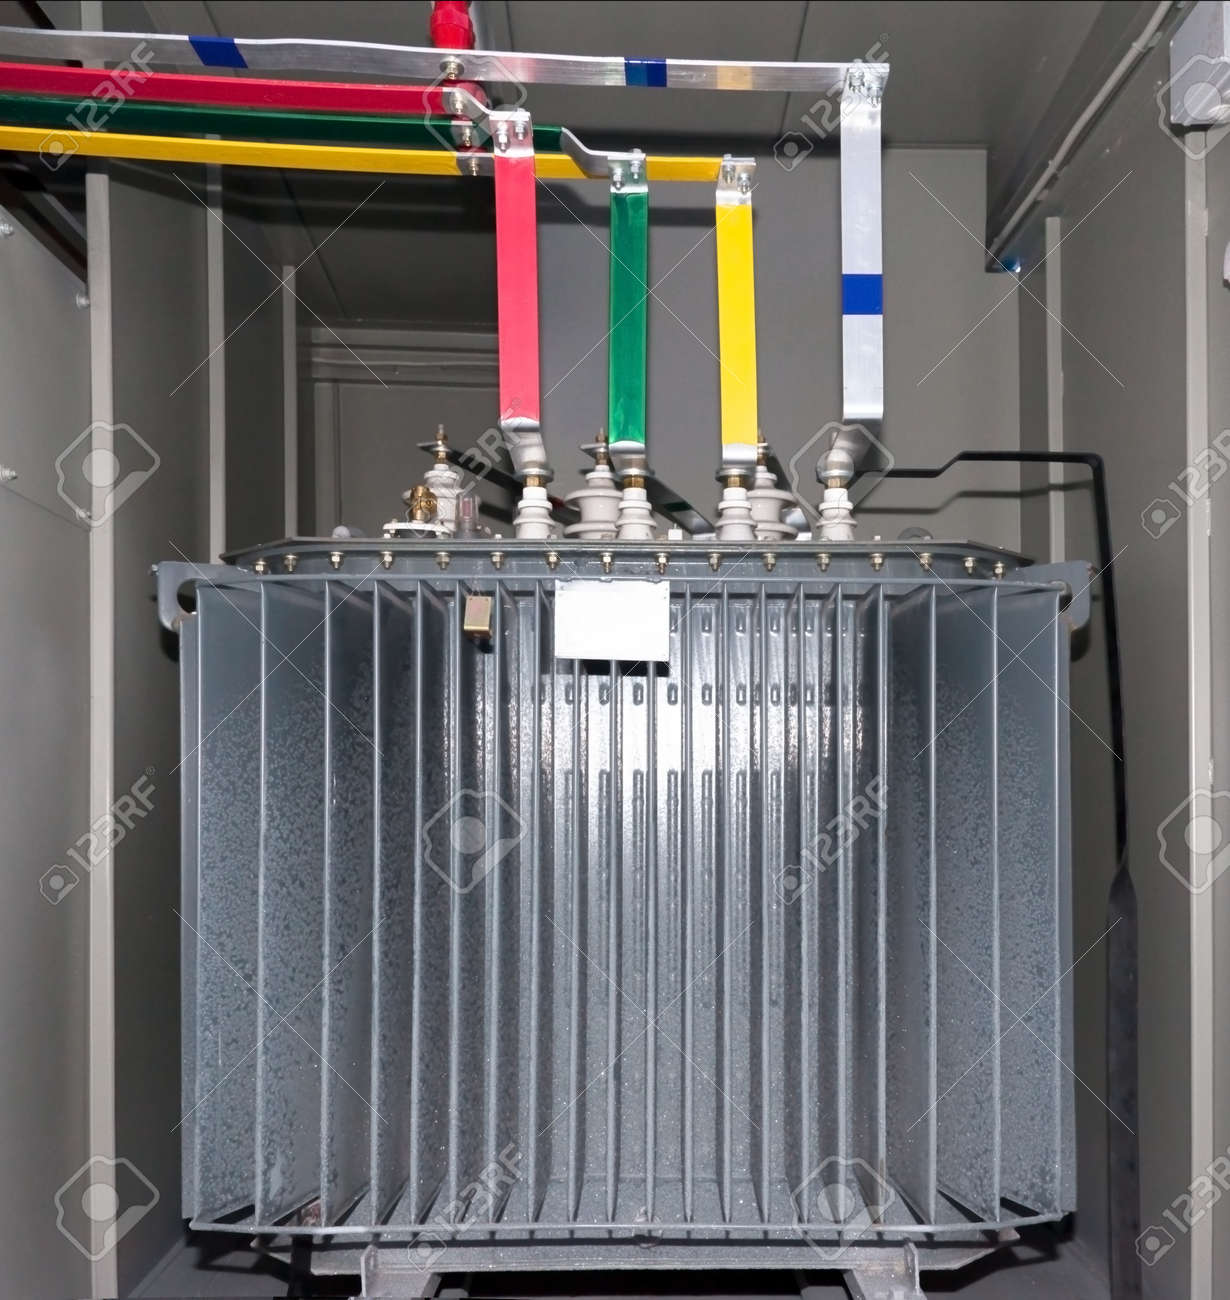 Generous Bulldogsecurity.com Wiring Thin Free Technical Service Bulletins Online Regular Dimarzio Ep1112 Dimarzio 3 Way Switch Young Tsb Bulletins FreshDiagram Of Solar Panel System Power Transformer In The Compartment Of Steel. New Electrical ..